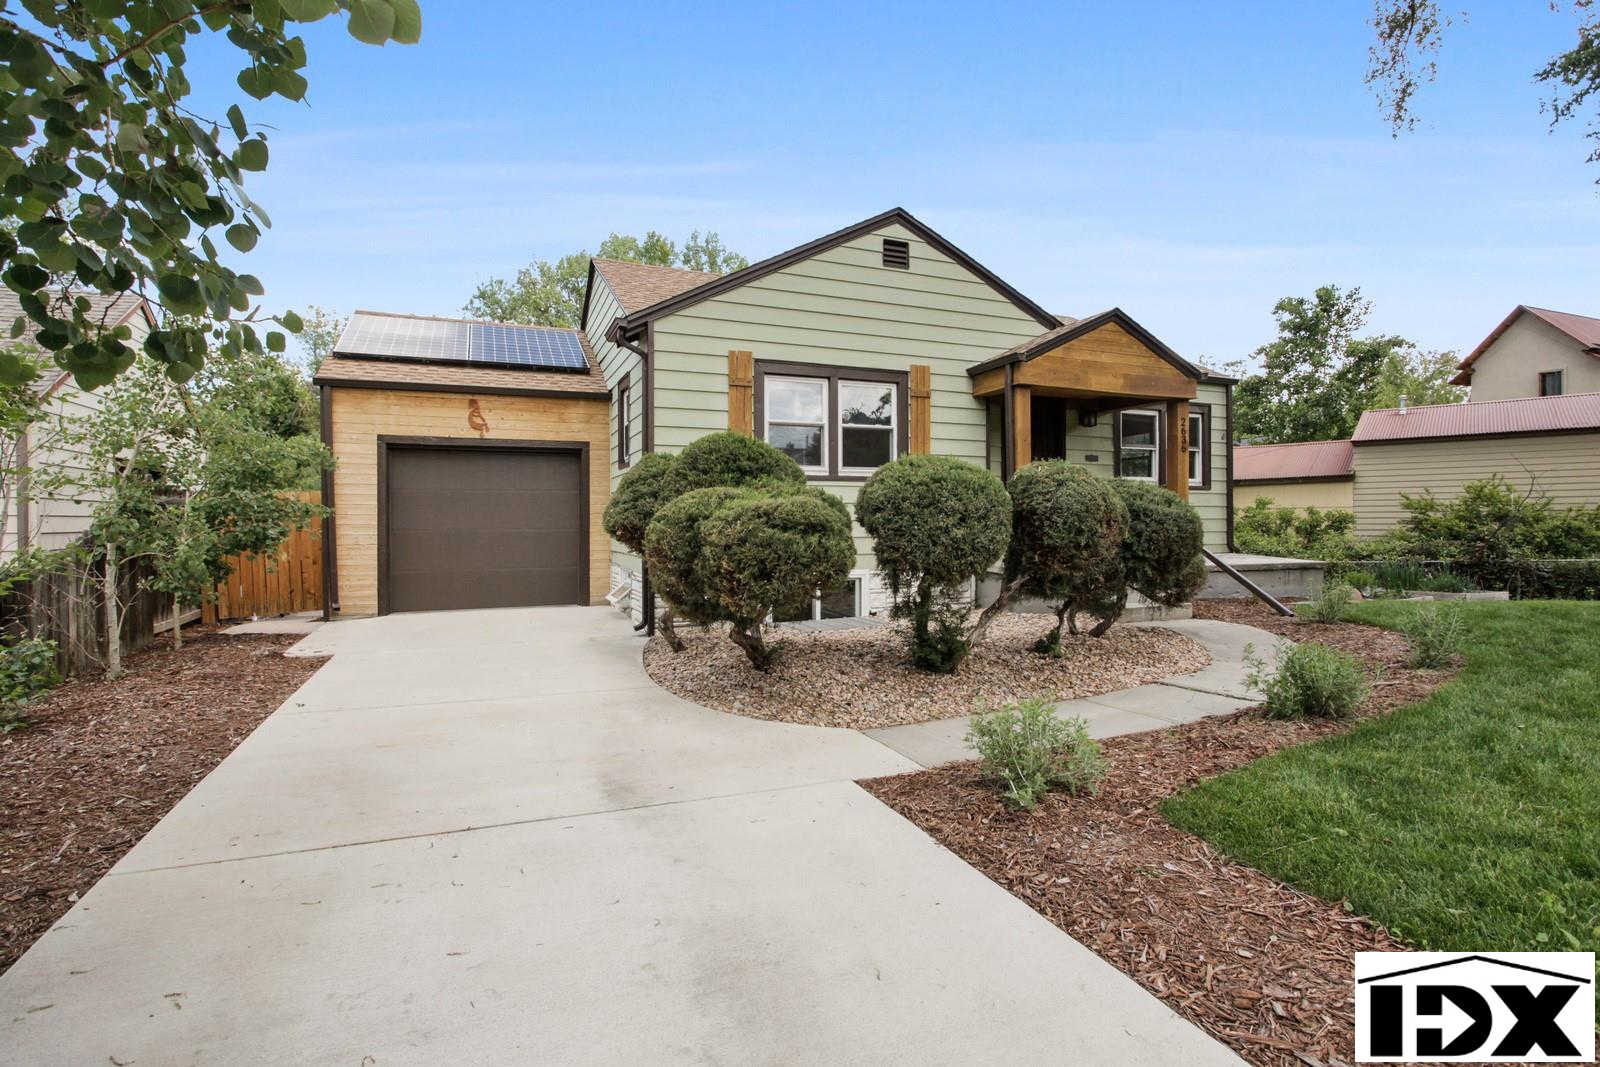 2636 South Pearl Street, Denver, CO 80210 now has a new price of $519,999!